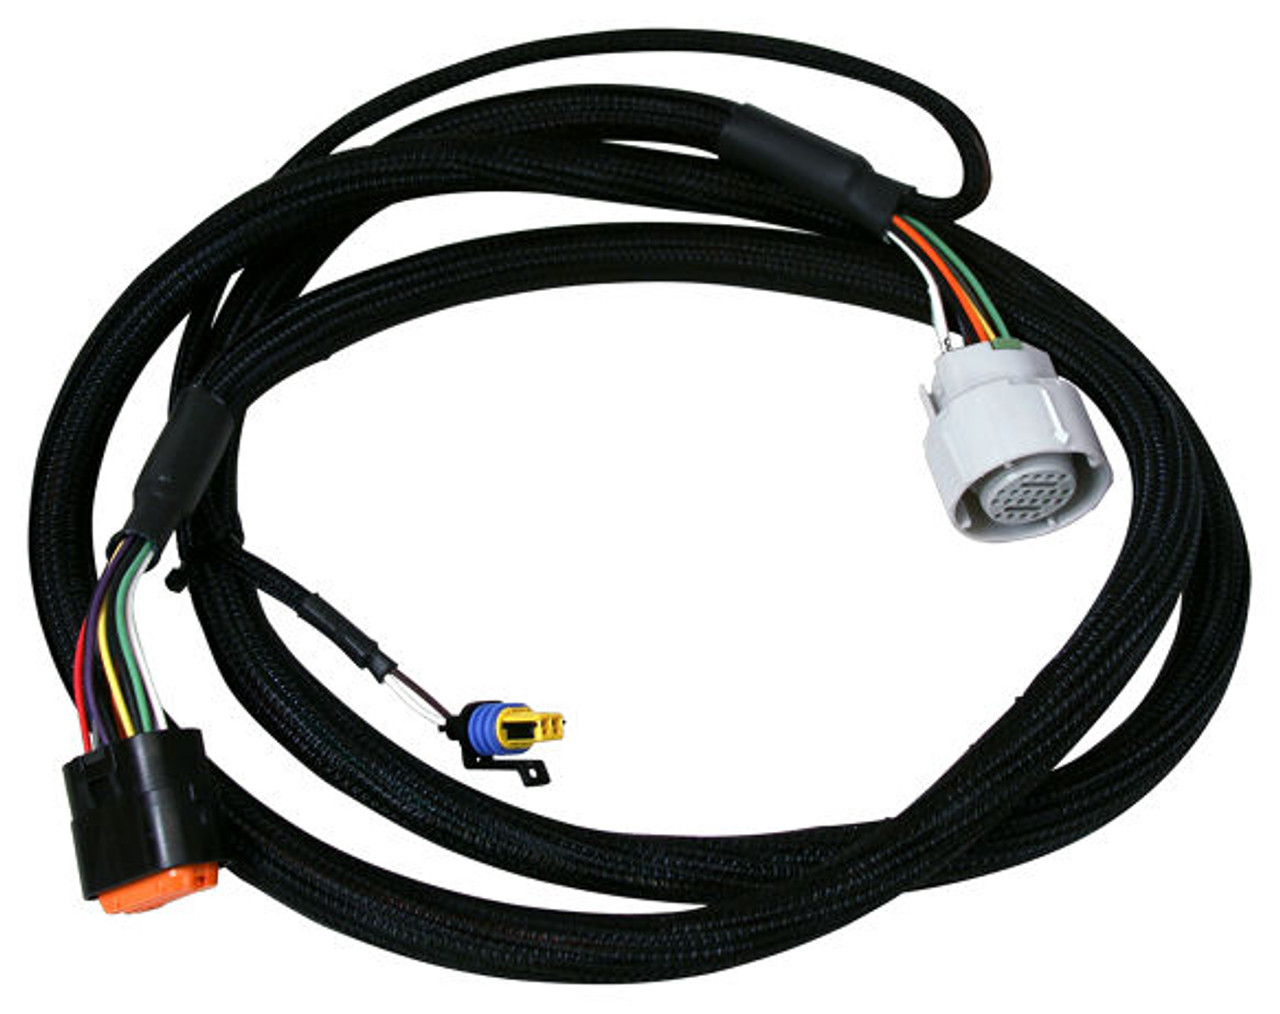 MSD Atomic 2770 TCM Harness for GM 4L60E/4l80E Transmissions on dhcp diagram, msd 7al 3 wiring, msd air cleaner, msd ignition, msd fuel pump, msd wiring from starter, msd distributor, msd cable, lan network diagram, msd wiring book, msd wiring jeep, msd carburetor, call flow diagram, msd wiring ford inline 6,